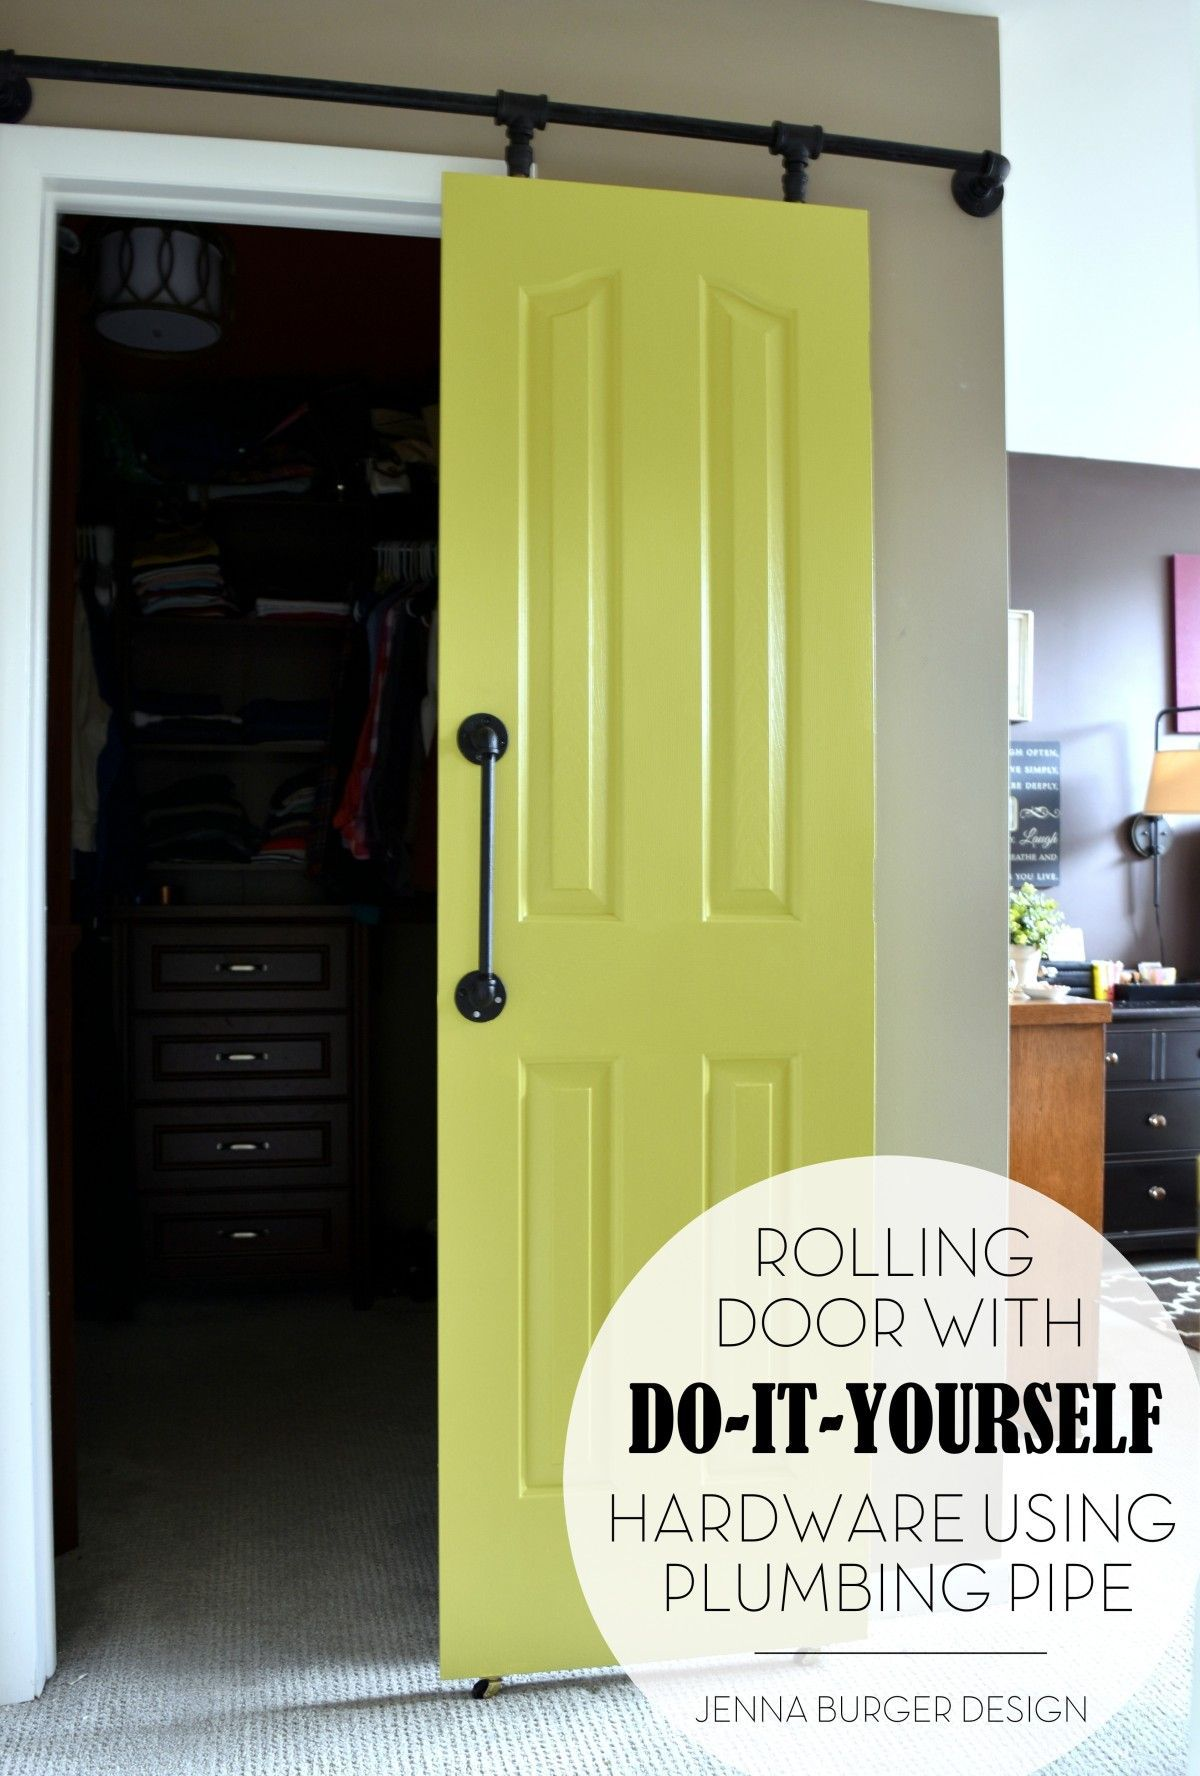 Diy rolling door hardware using plumbing pipe get the look function of a rolling door for about 60 custom size to fit your space tutorial by www